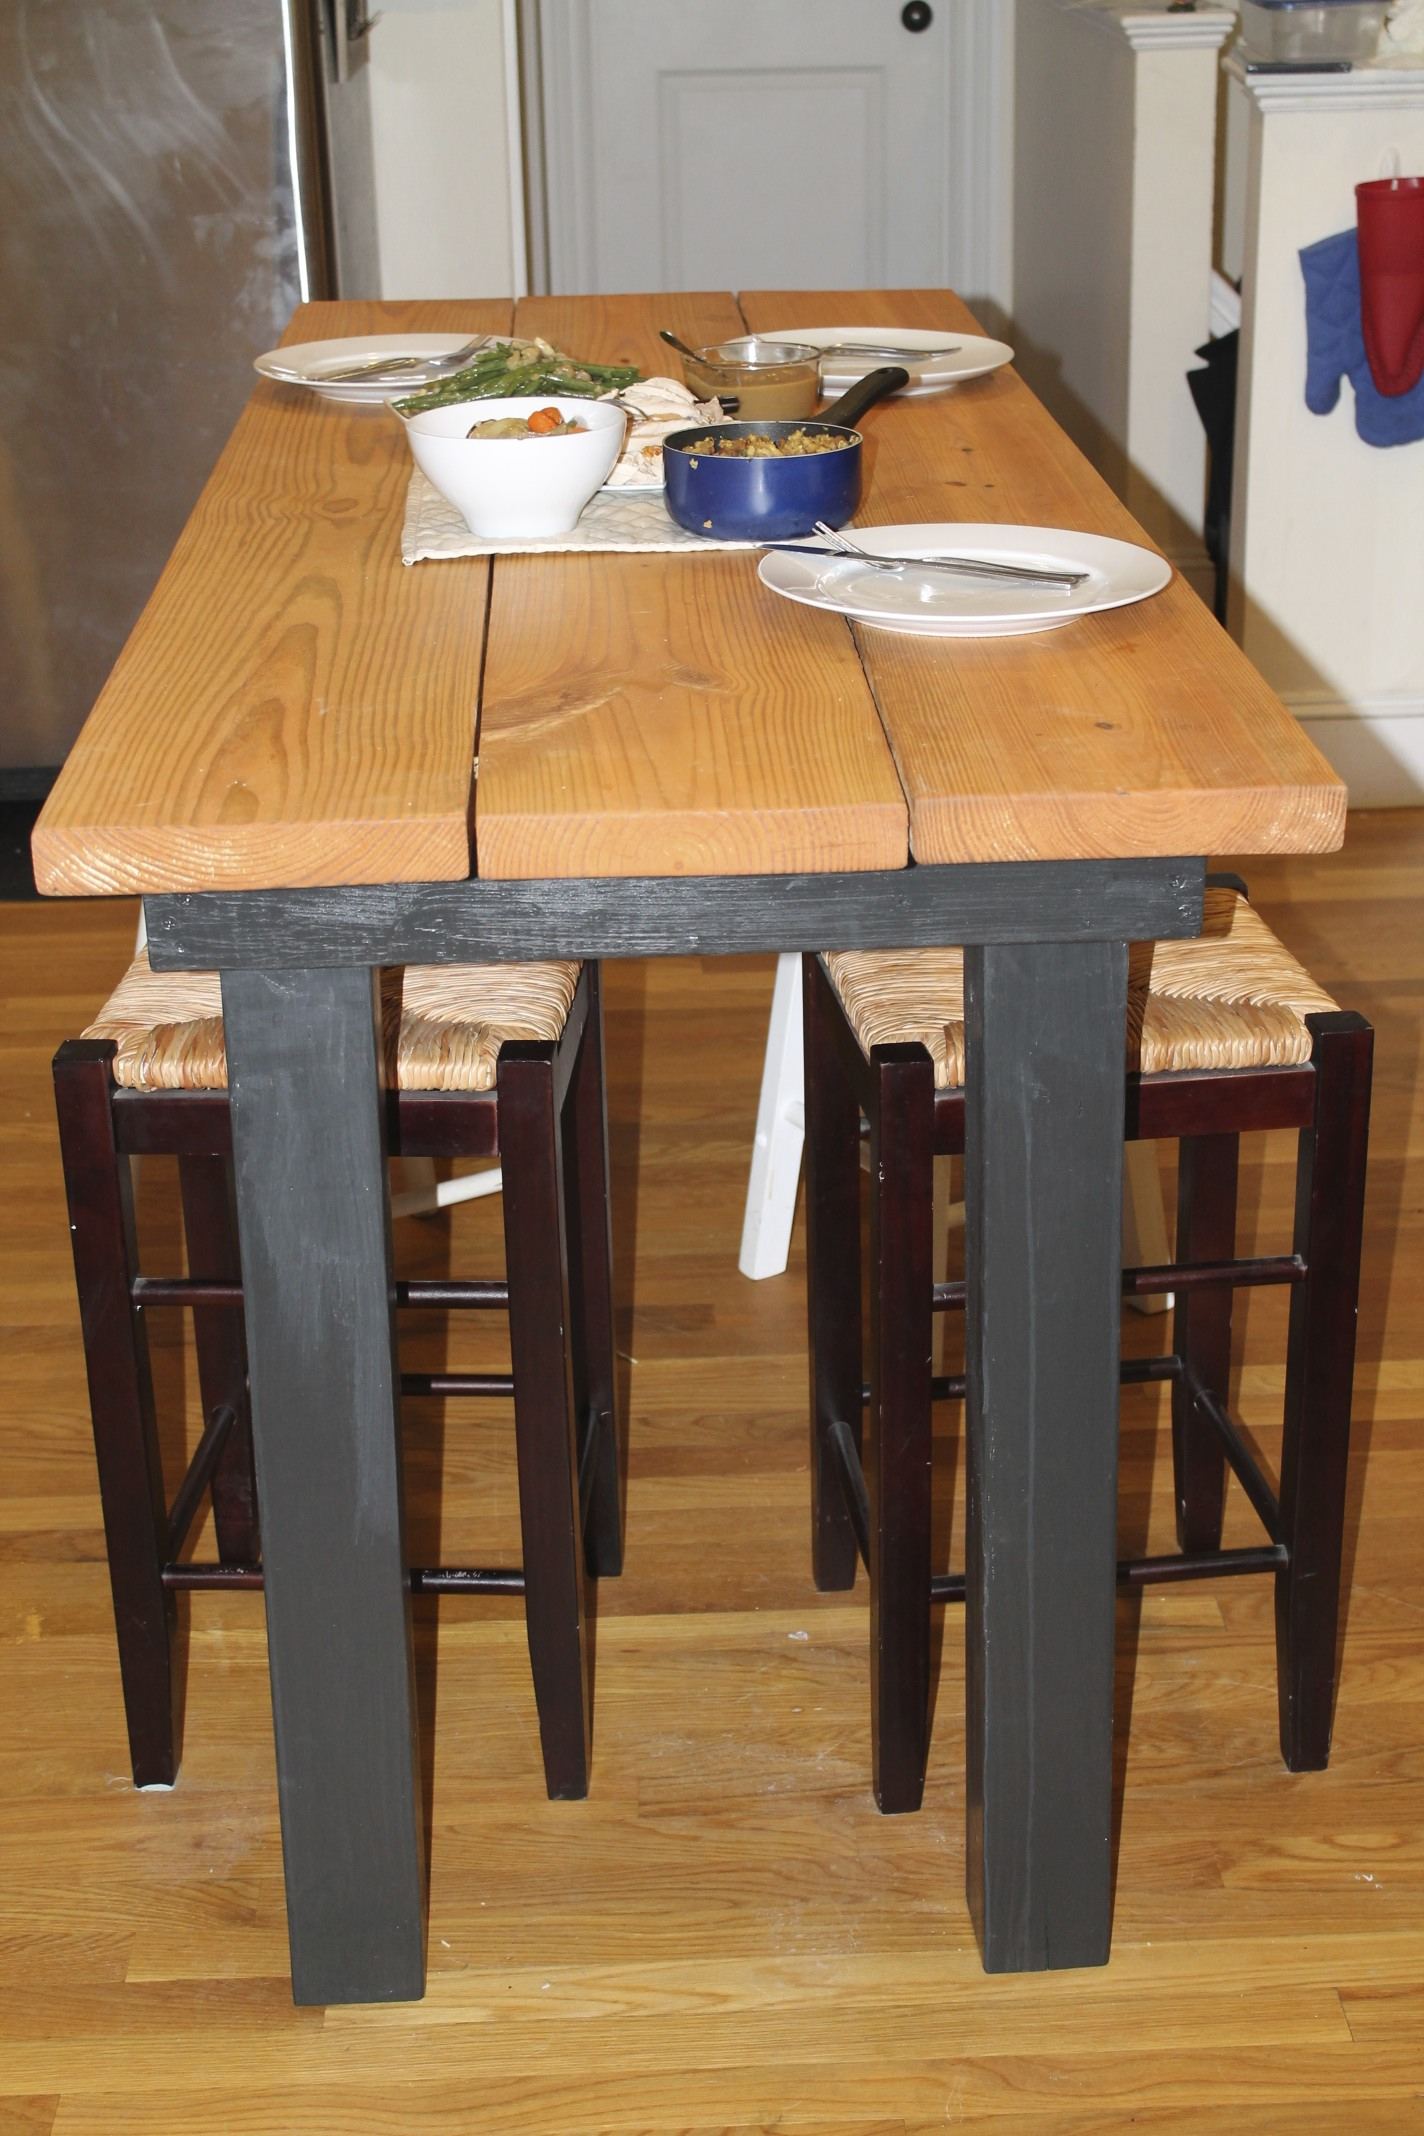 diy building bar height table plans free